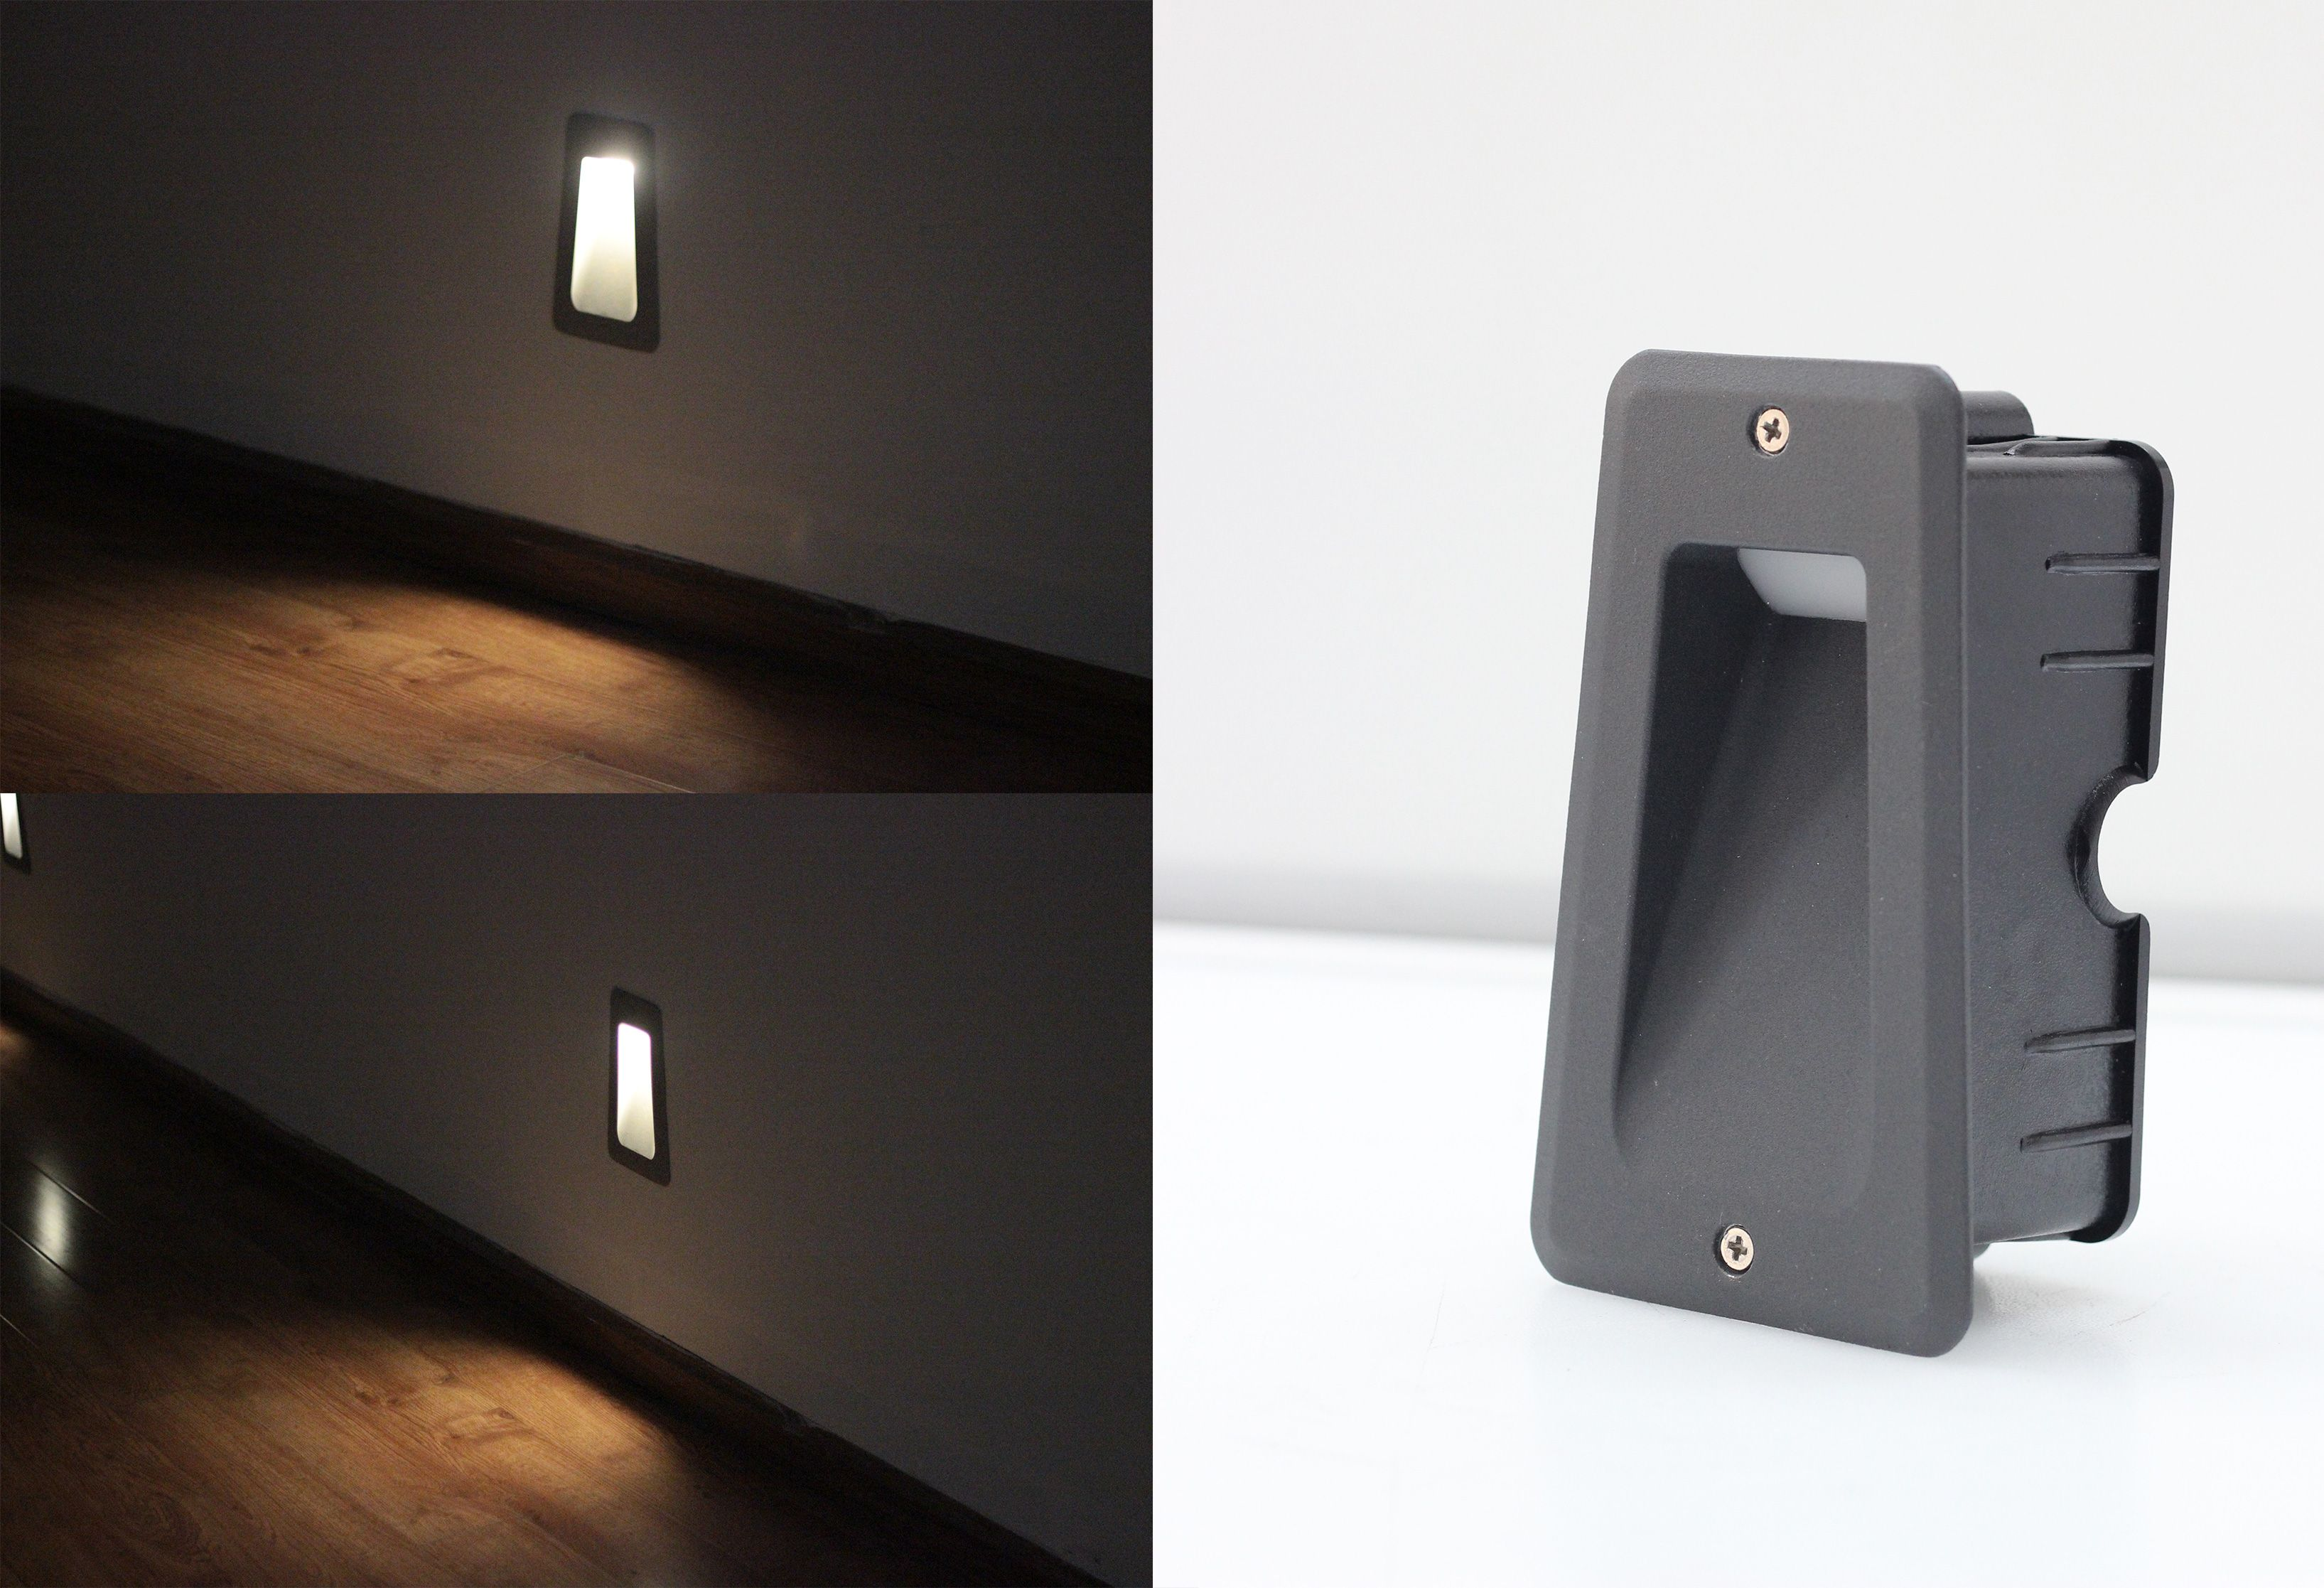 Lighting Art On The Walls Led Step Lights Economical Serie With High Quality Performance Helps Your Garden